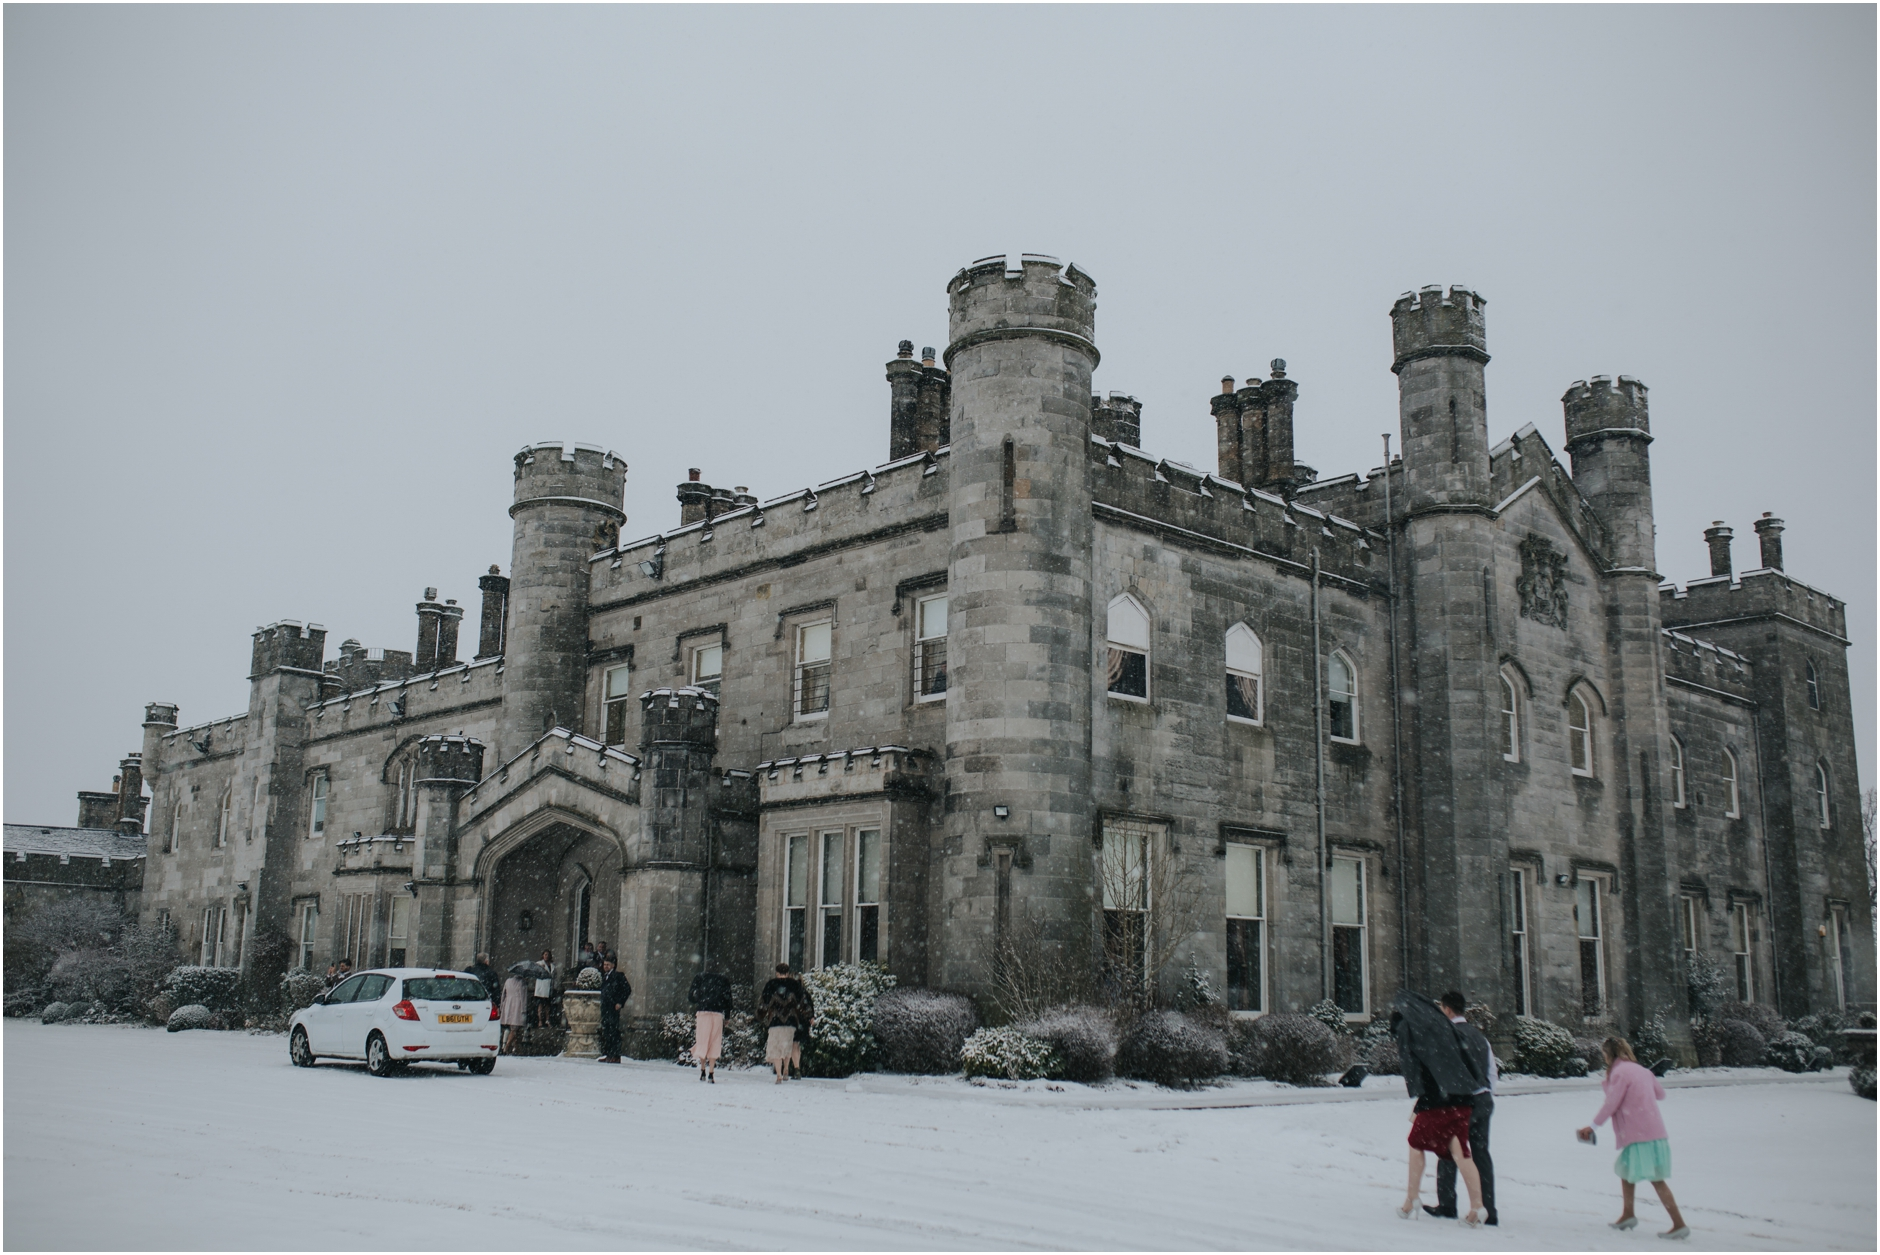 dundas castle, edinburgh south queensferry in the snow